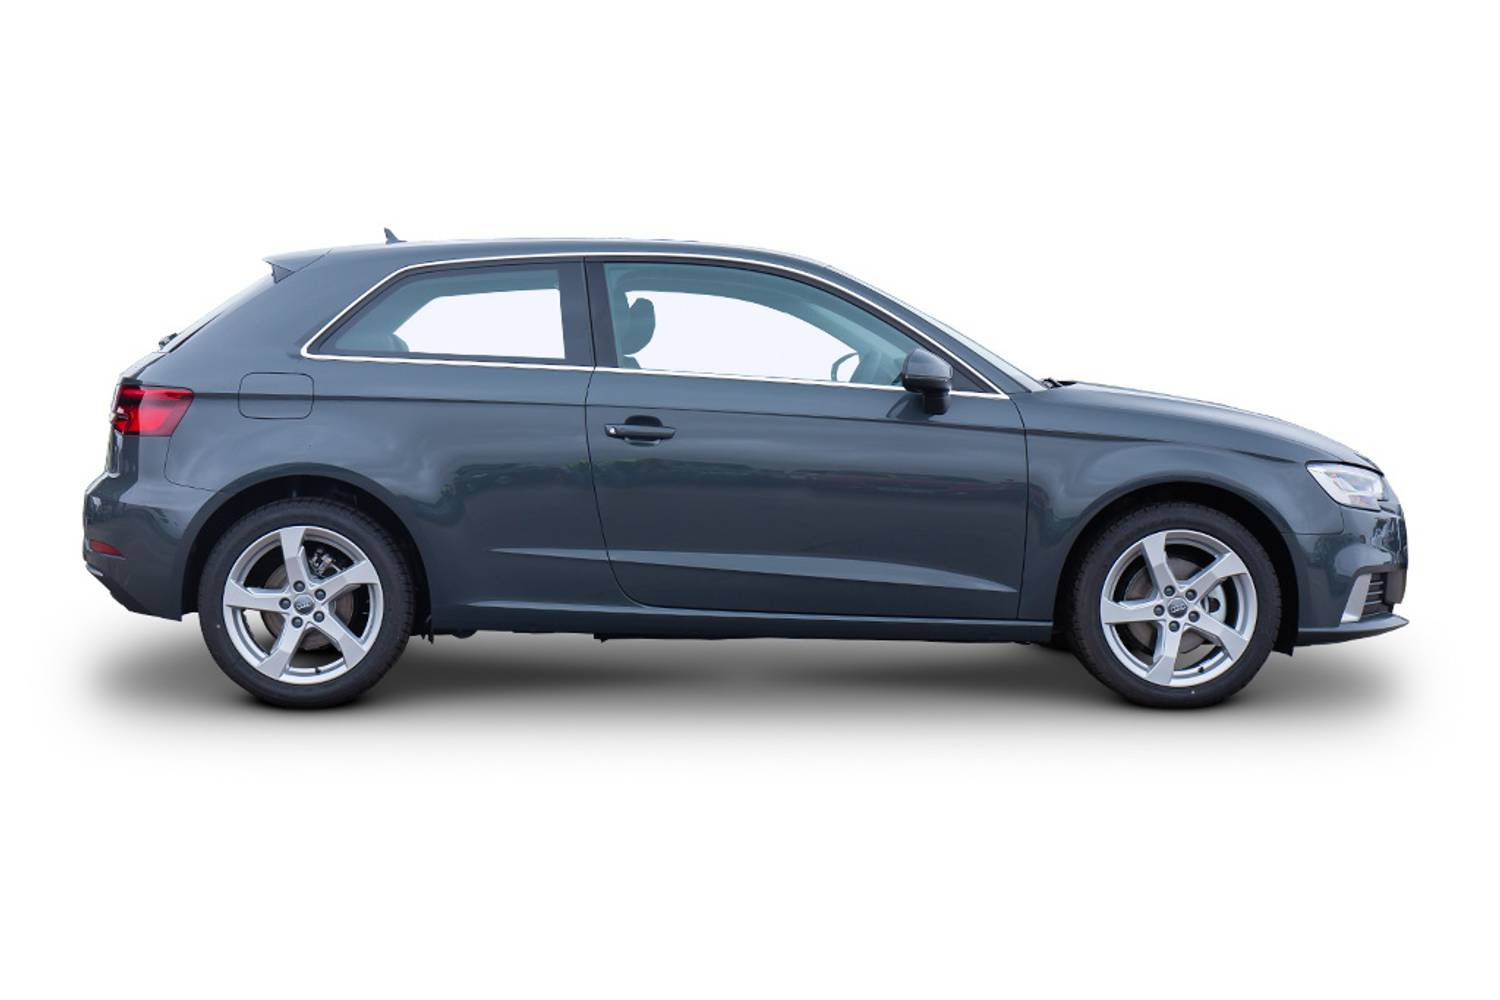 new audi a3 hatchback s3 tfsi quattro 3 door s tronic. Black Bedroom Furniture Sets. Home Design Ideas